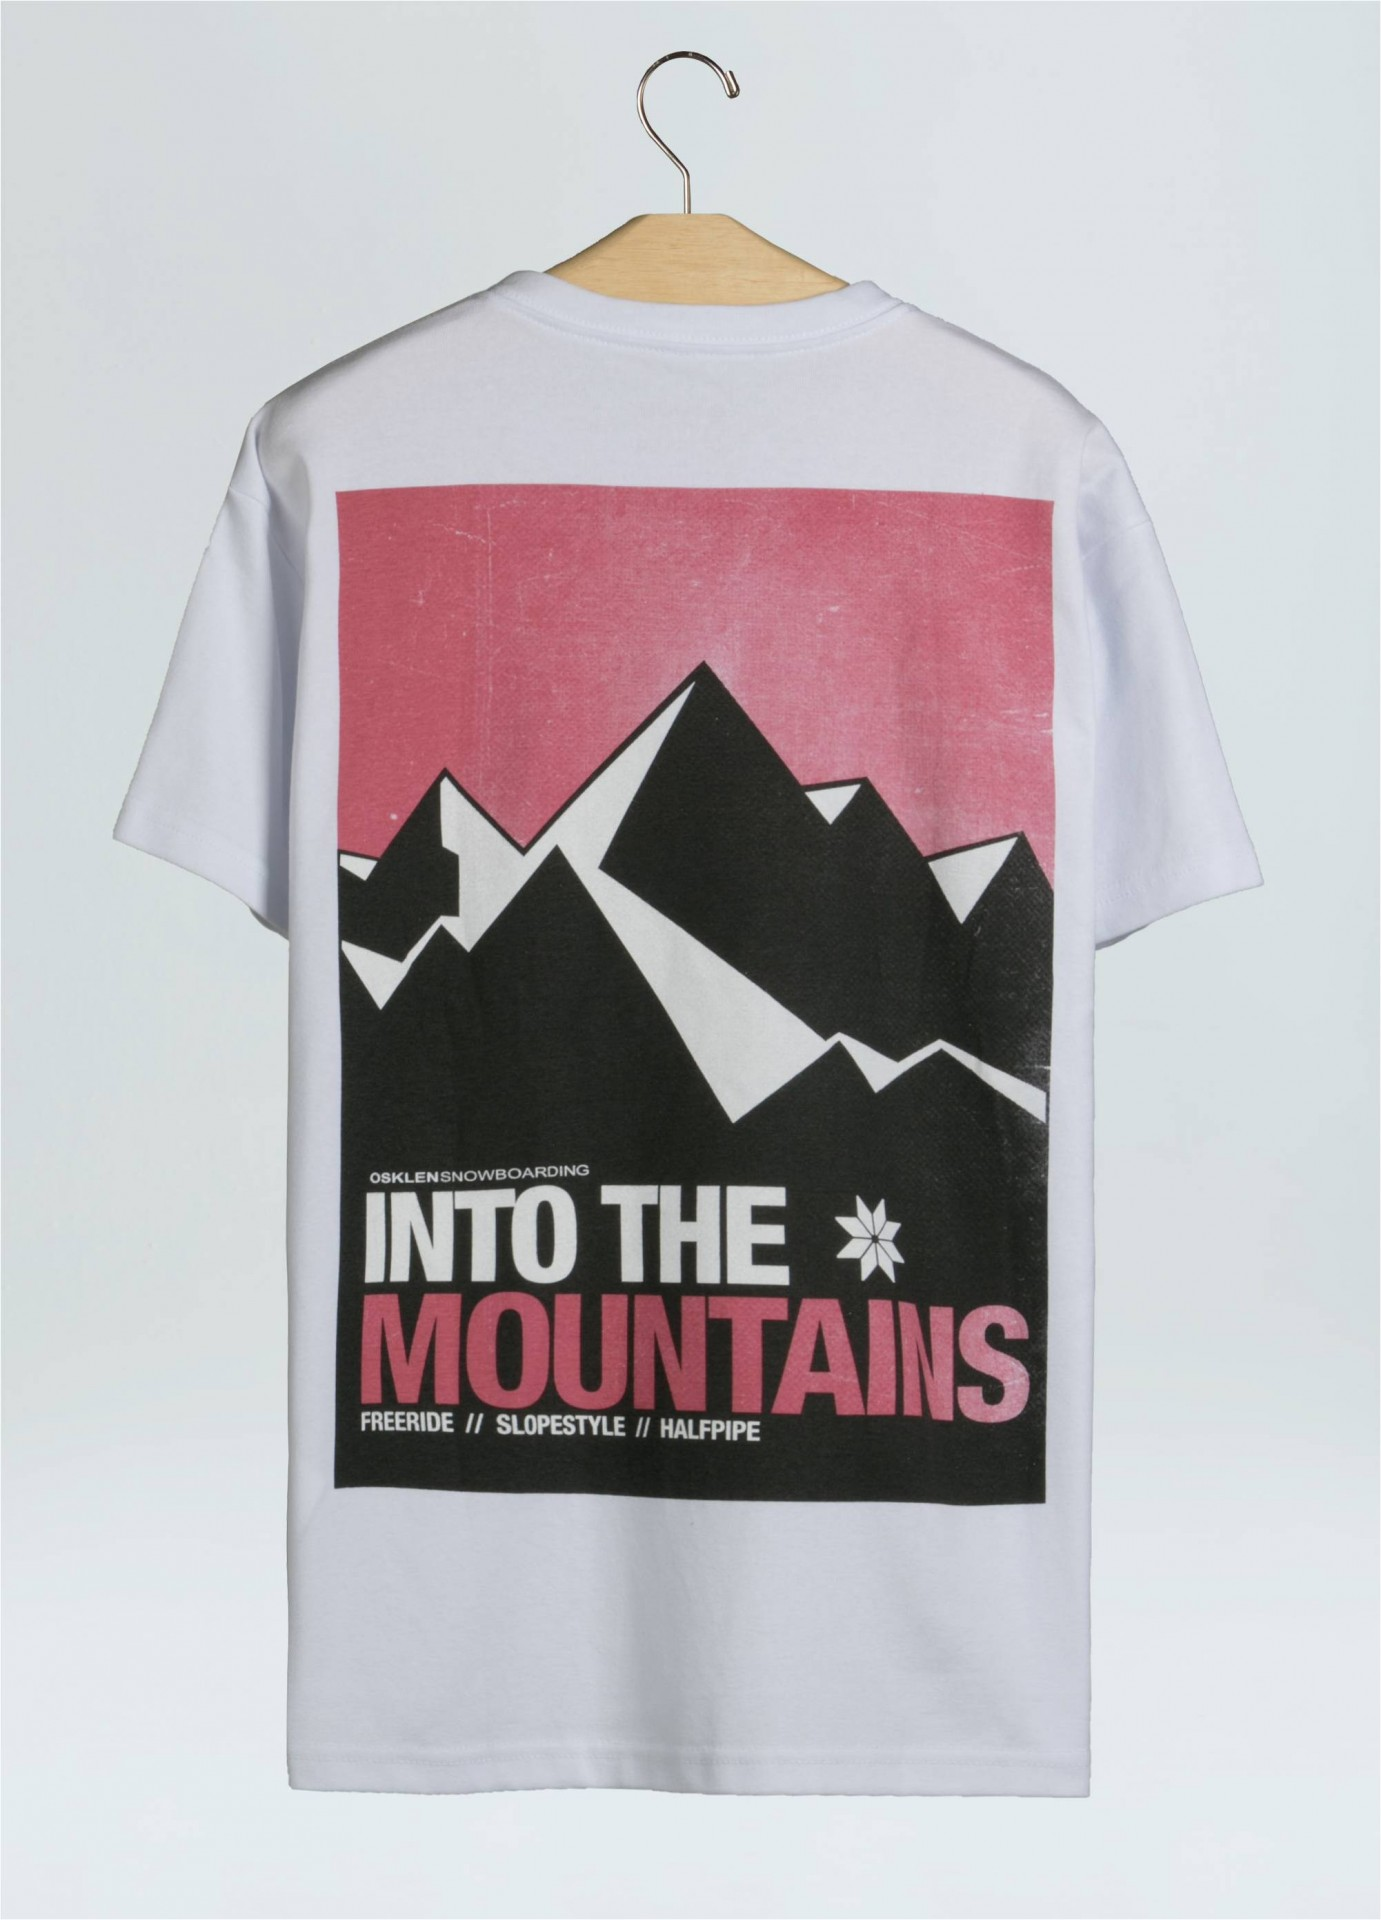 BIG SHIRT MONTAINS POSTER OSKLEN